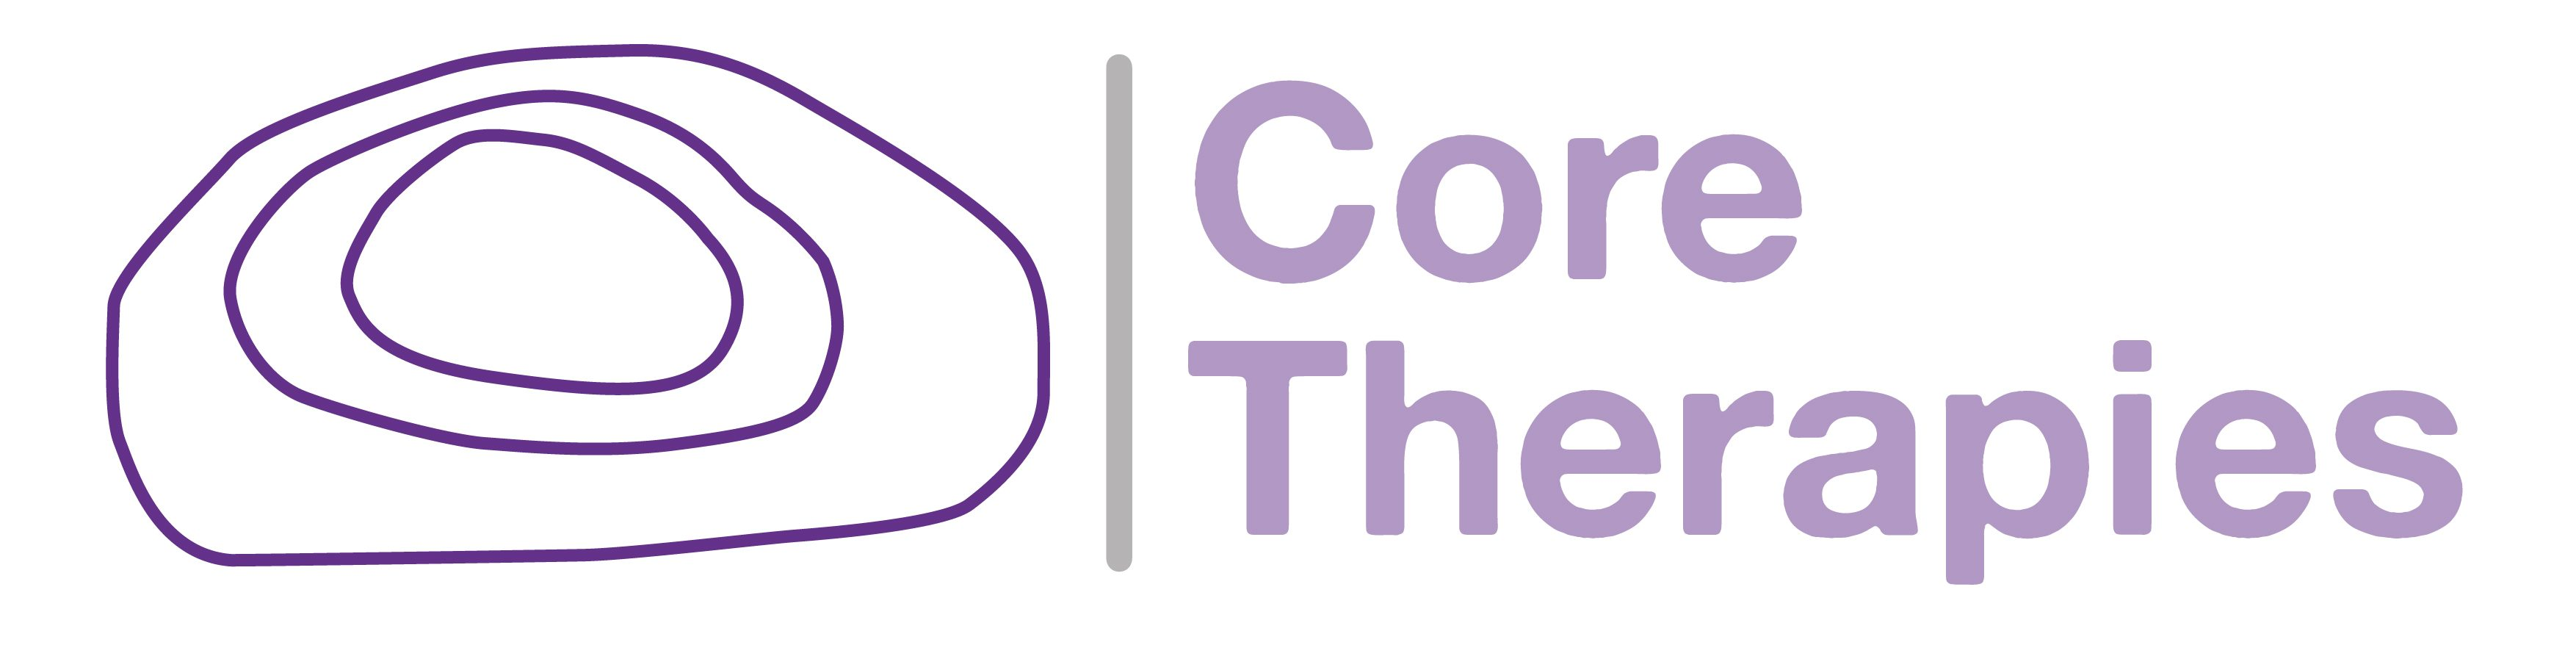 core therapies